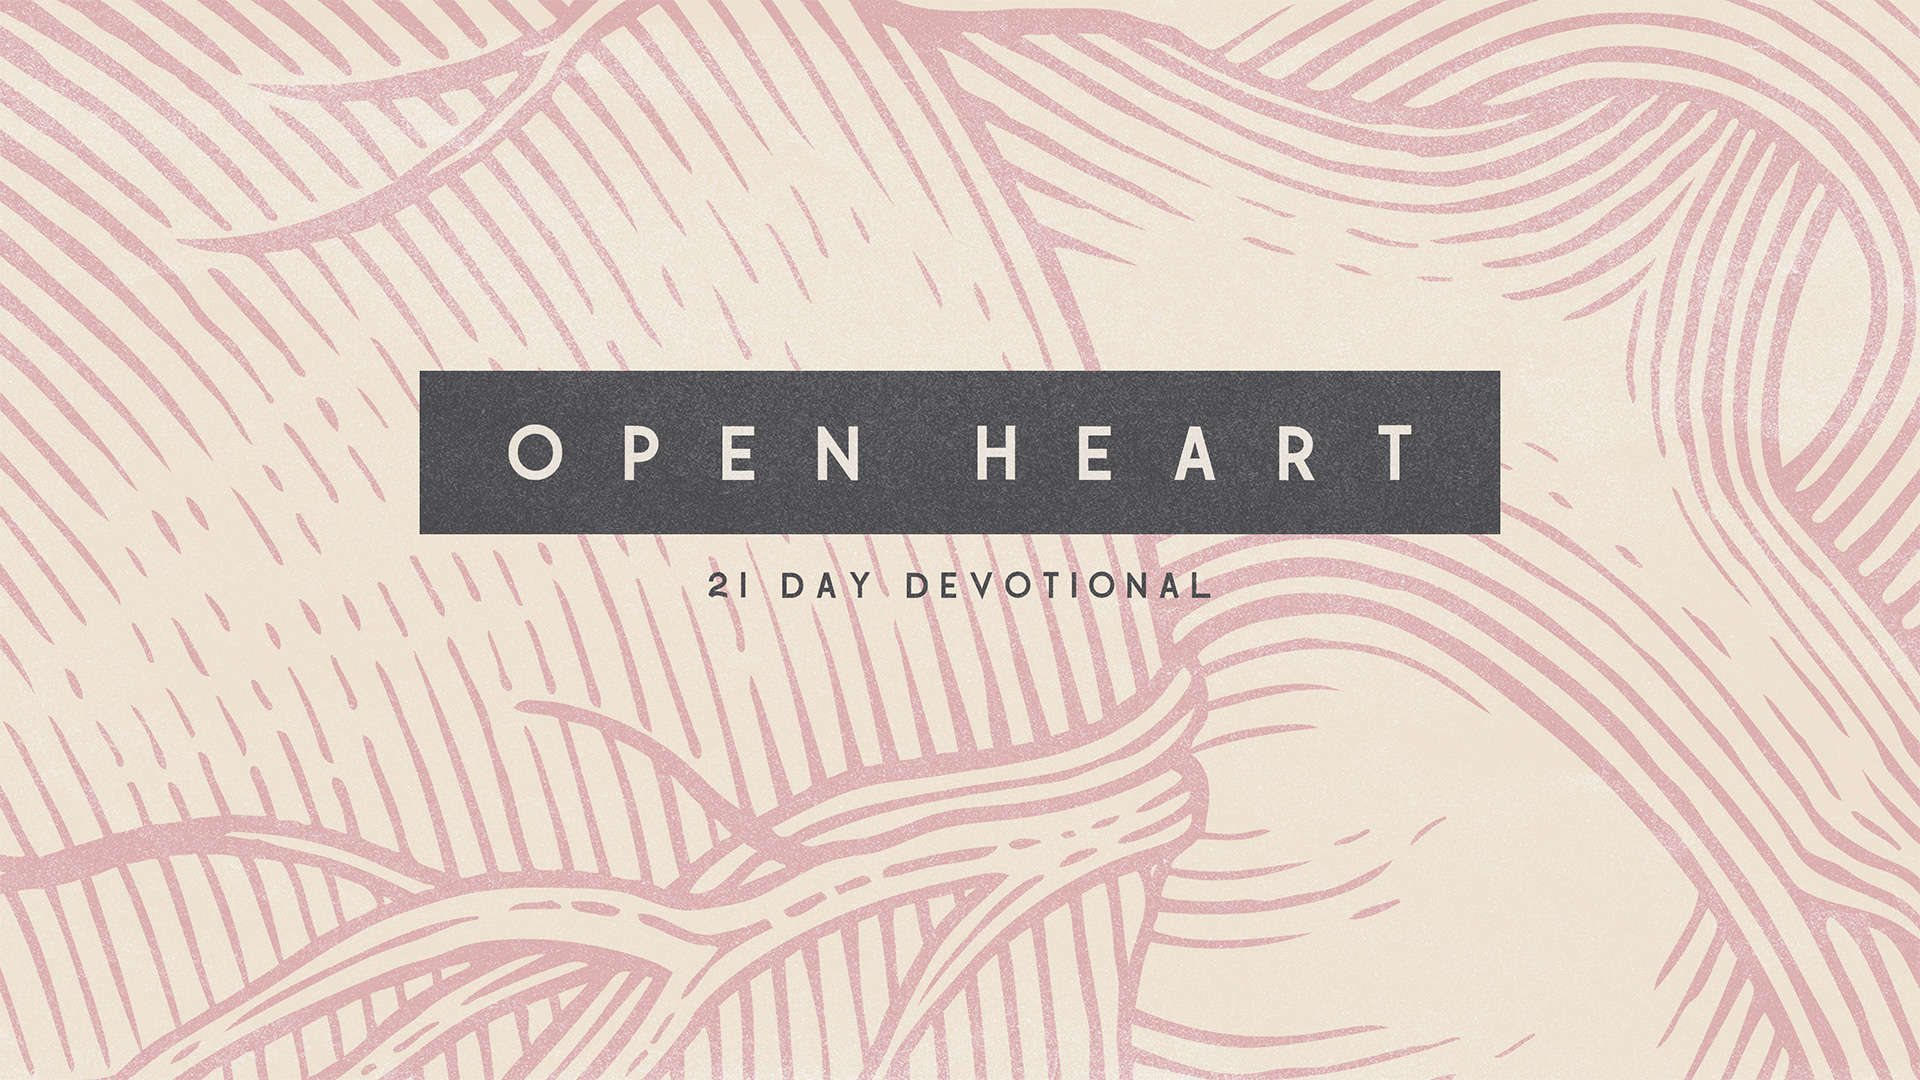 Ed Young Devotionals